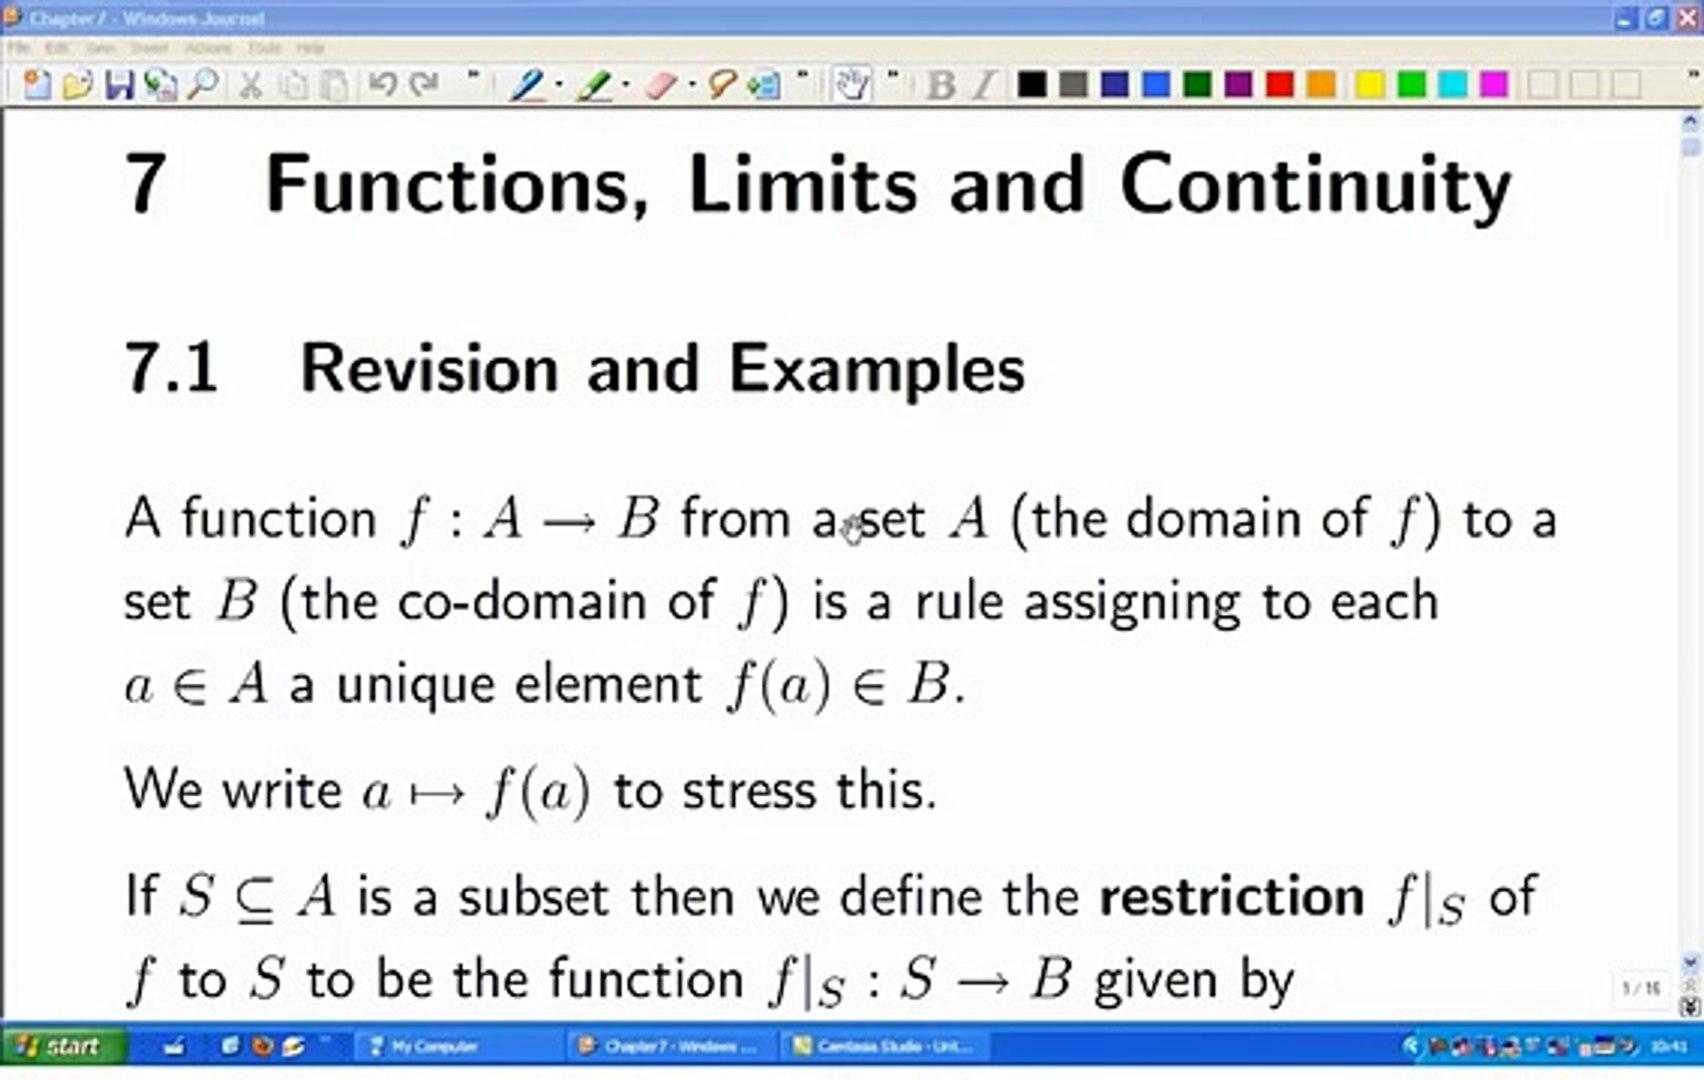 Lecture 12b: Math  Analysis - Functions, Limits and Continuity